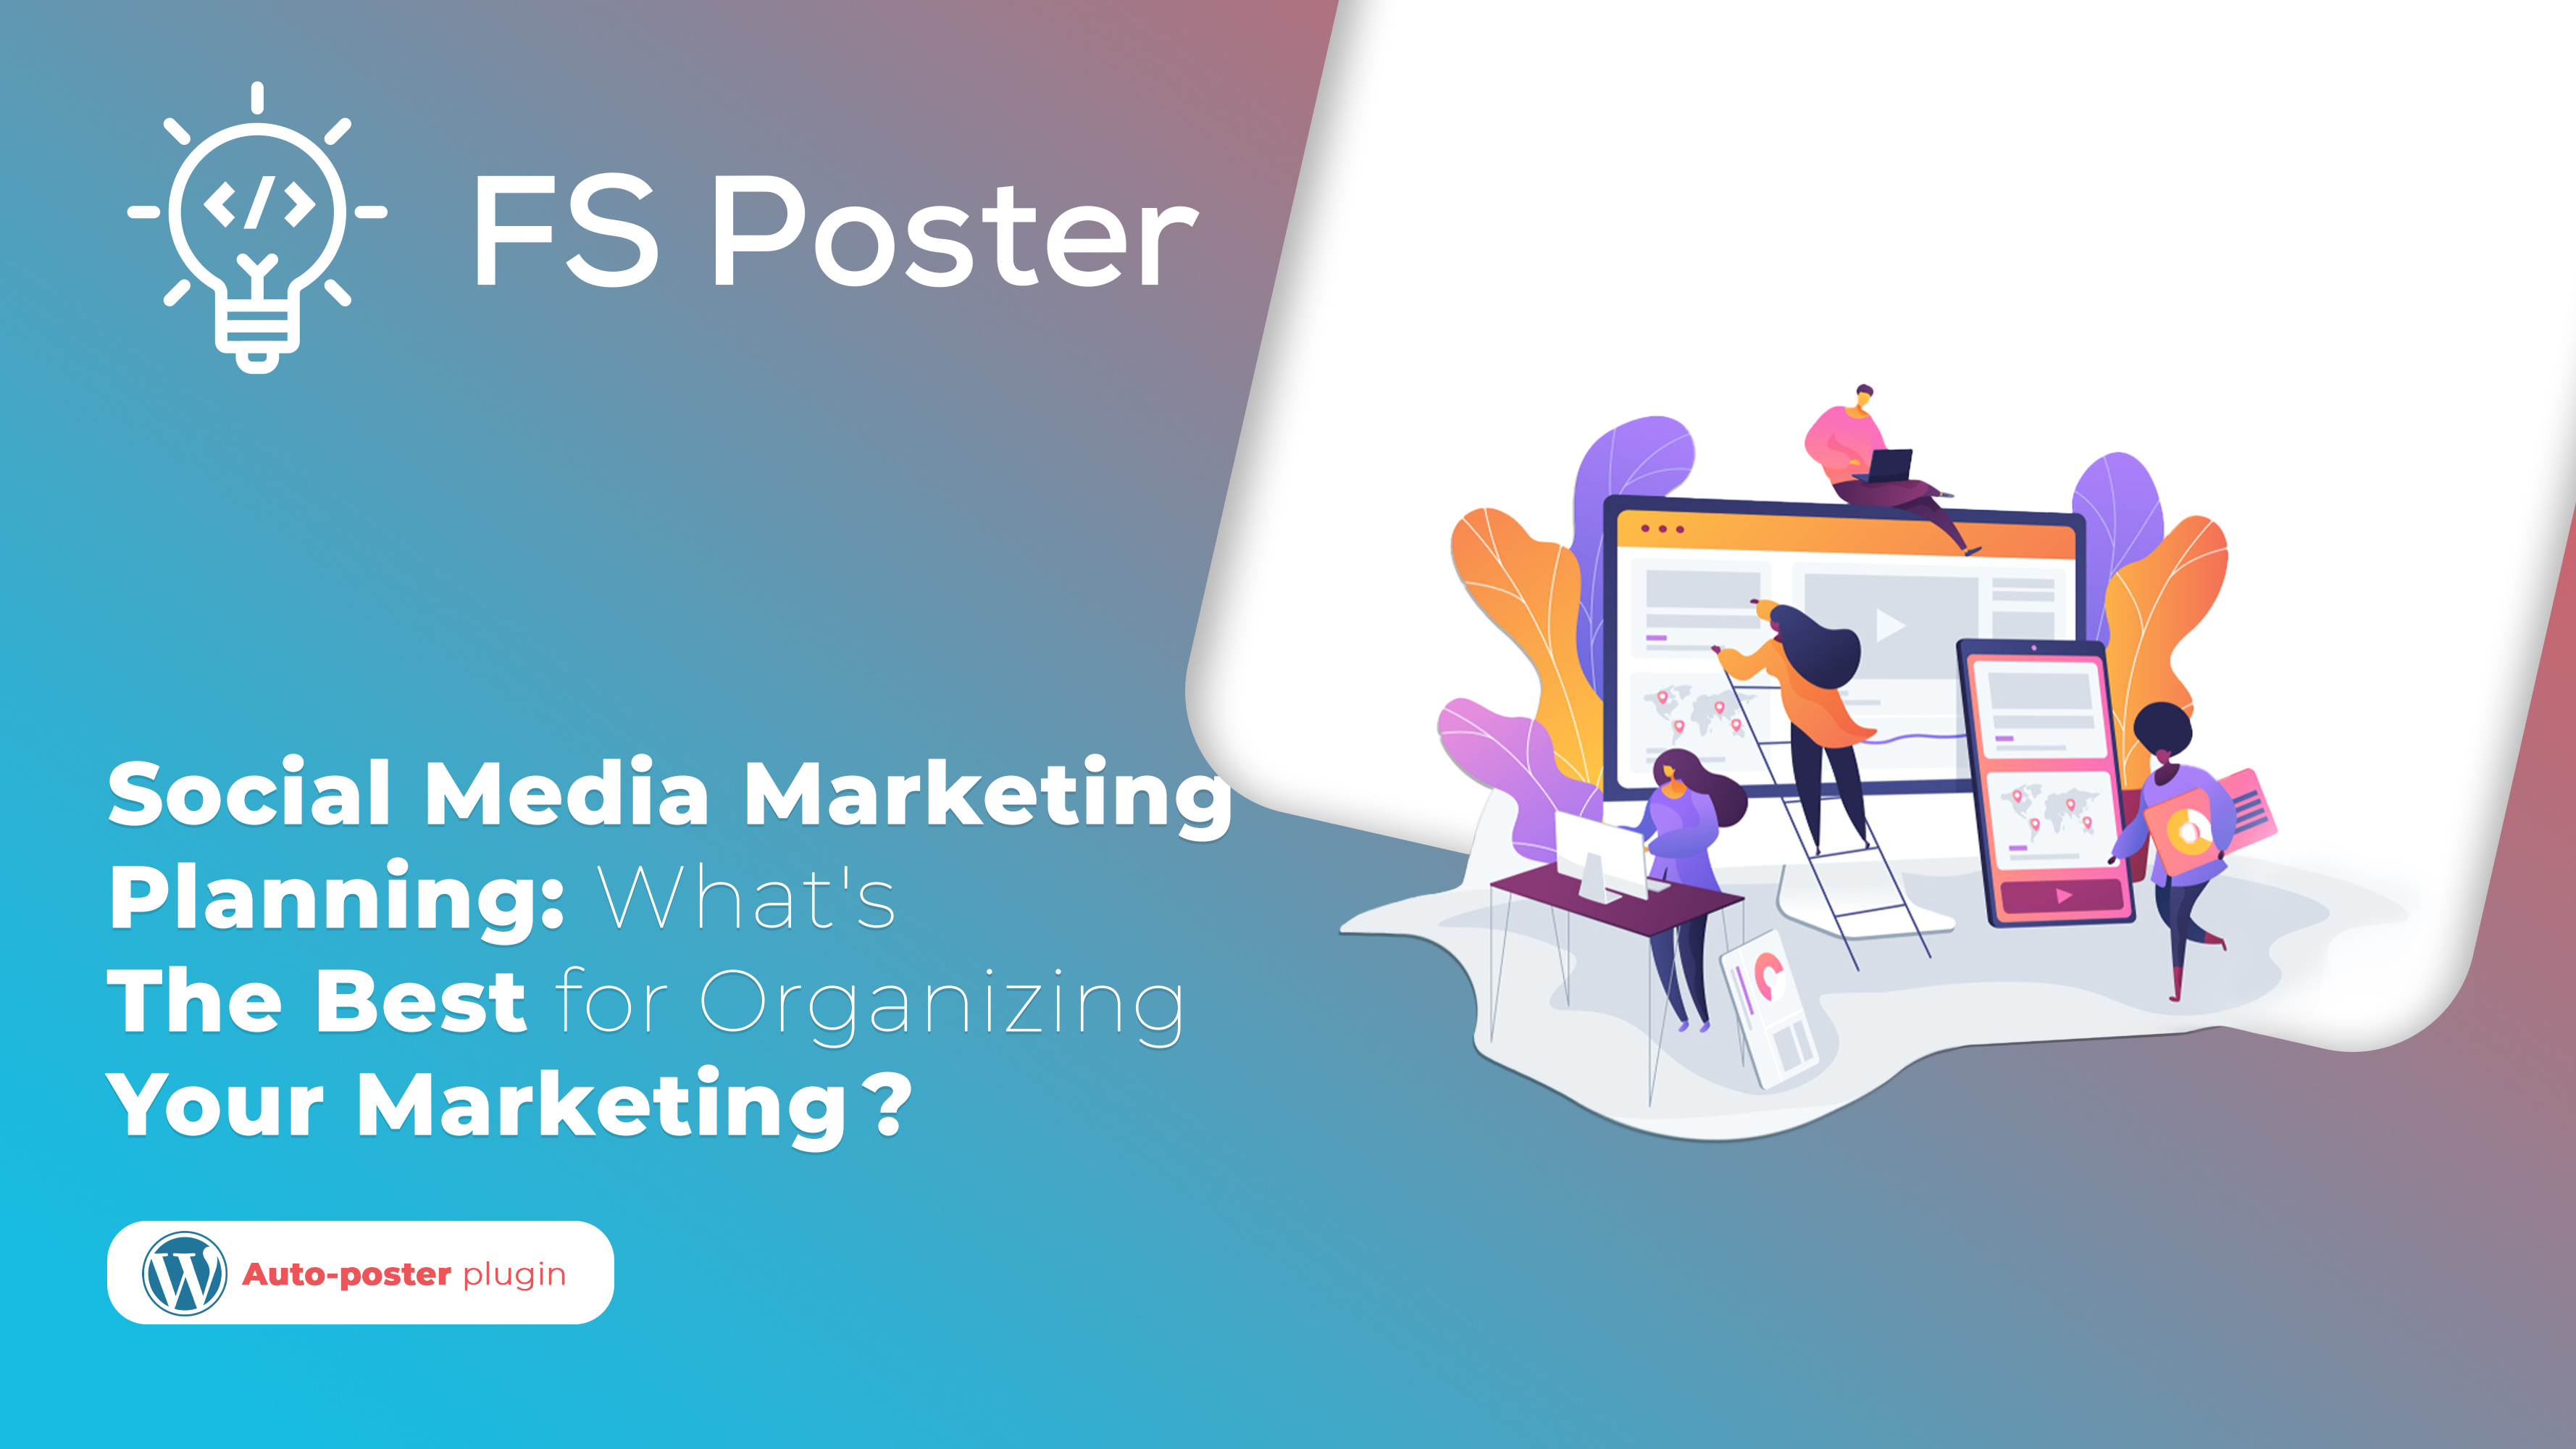 Effective Social Media Marketing Plan: What's The Best for Organizing Your Marketing